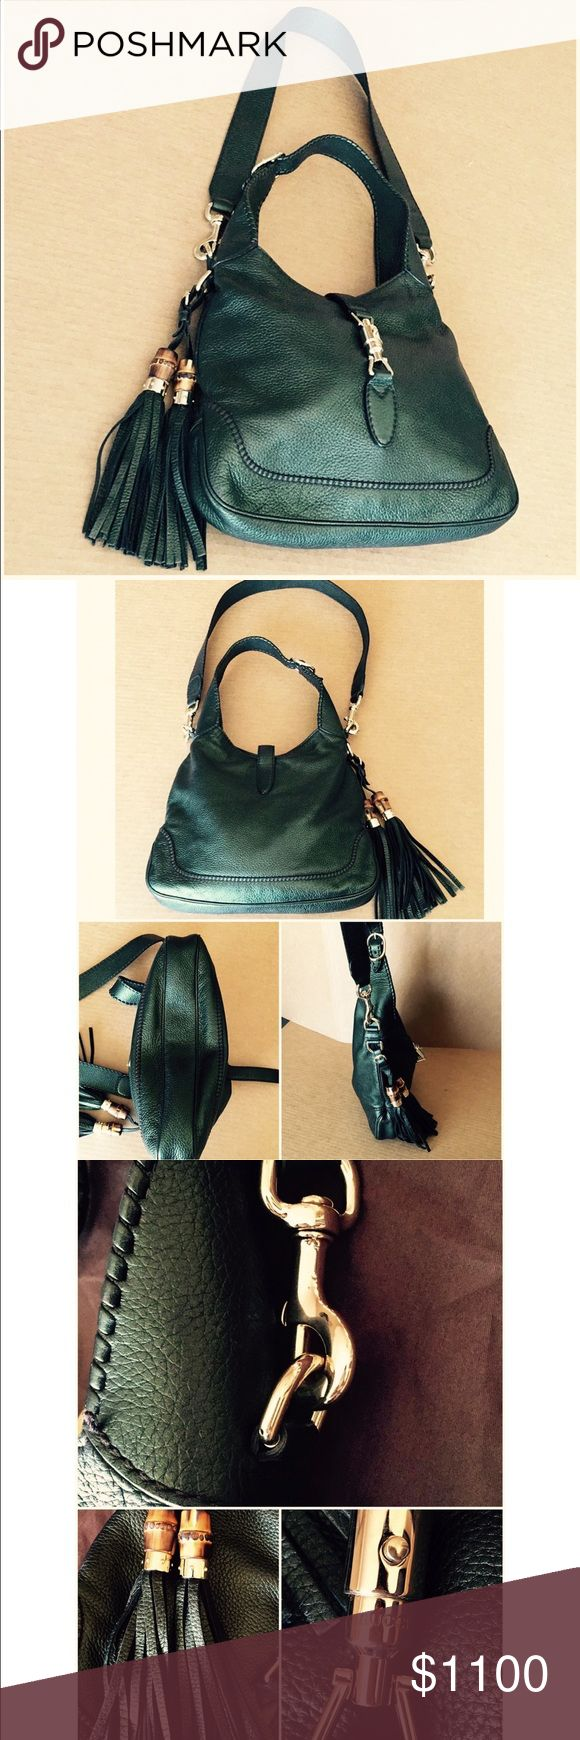 """‼️PROCE DROP‼️Gucci """"New Jackie"""" Hobo bag Pristine condition. Rare metallic green medium size """"NewJackie"""" hobo with signature tassels and gold hardware. Measures 14x12x2"""" Comes with Gucci dust bag. Gucci Bags Hobos"""